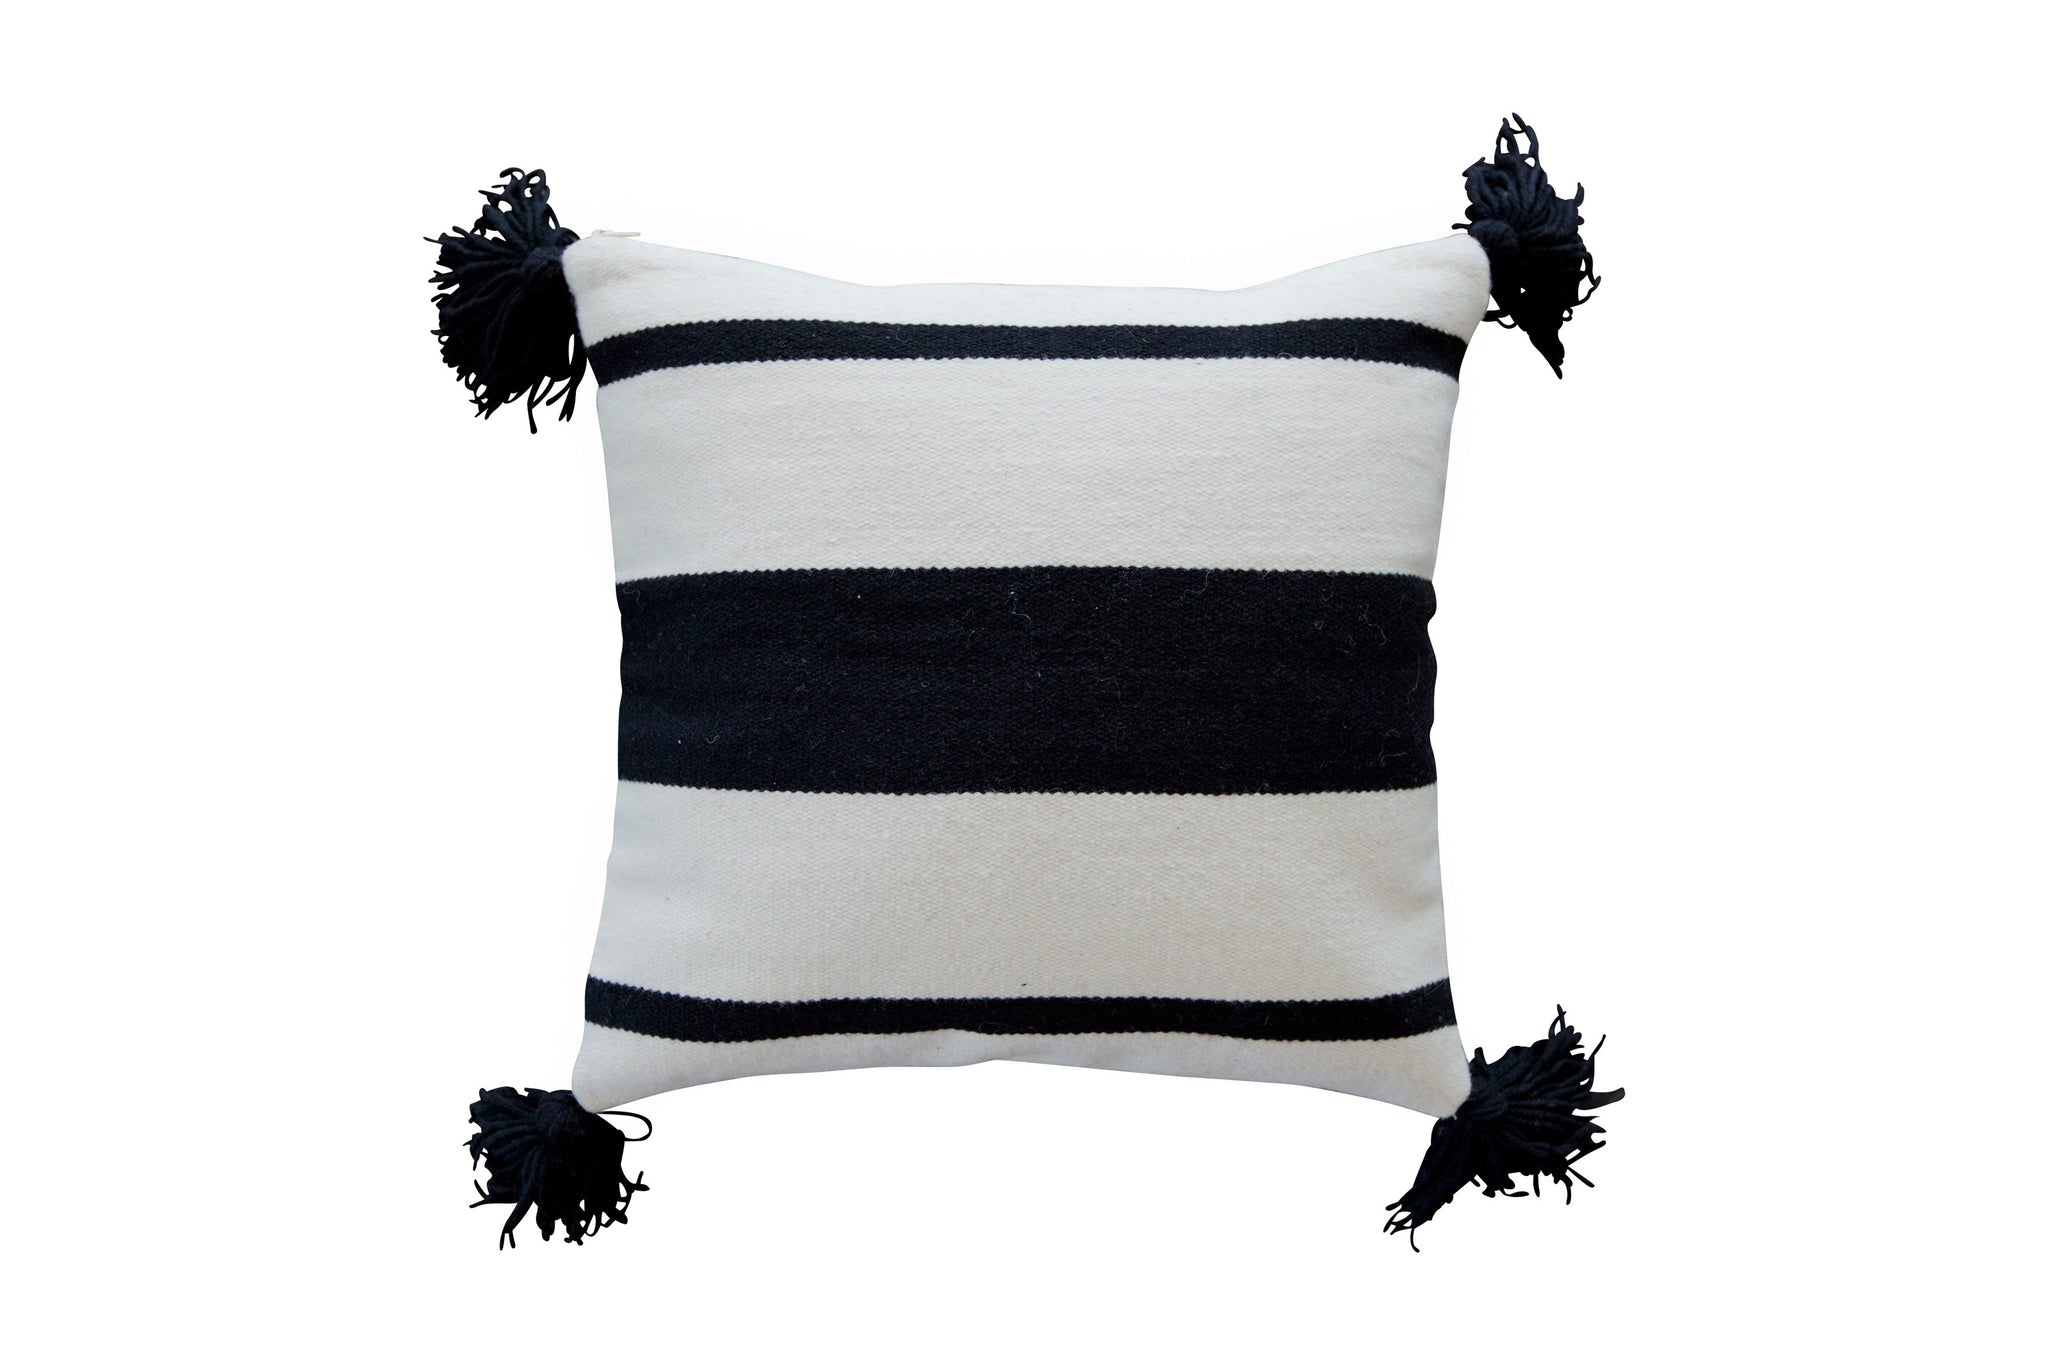 2012BLK,Thick Striped Pillow in Black